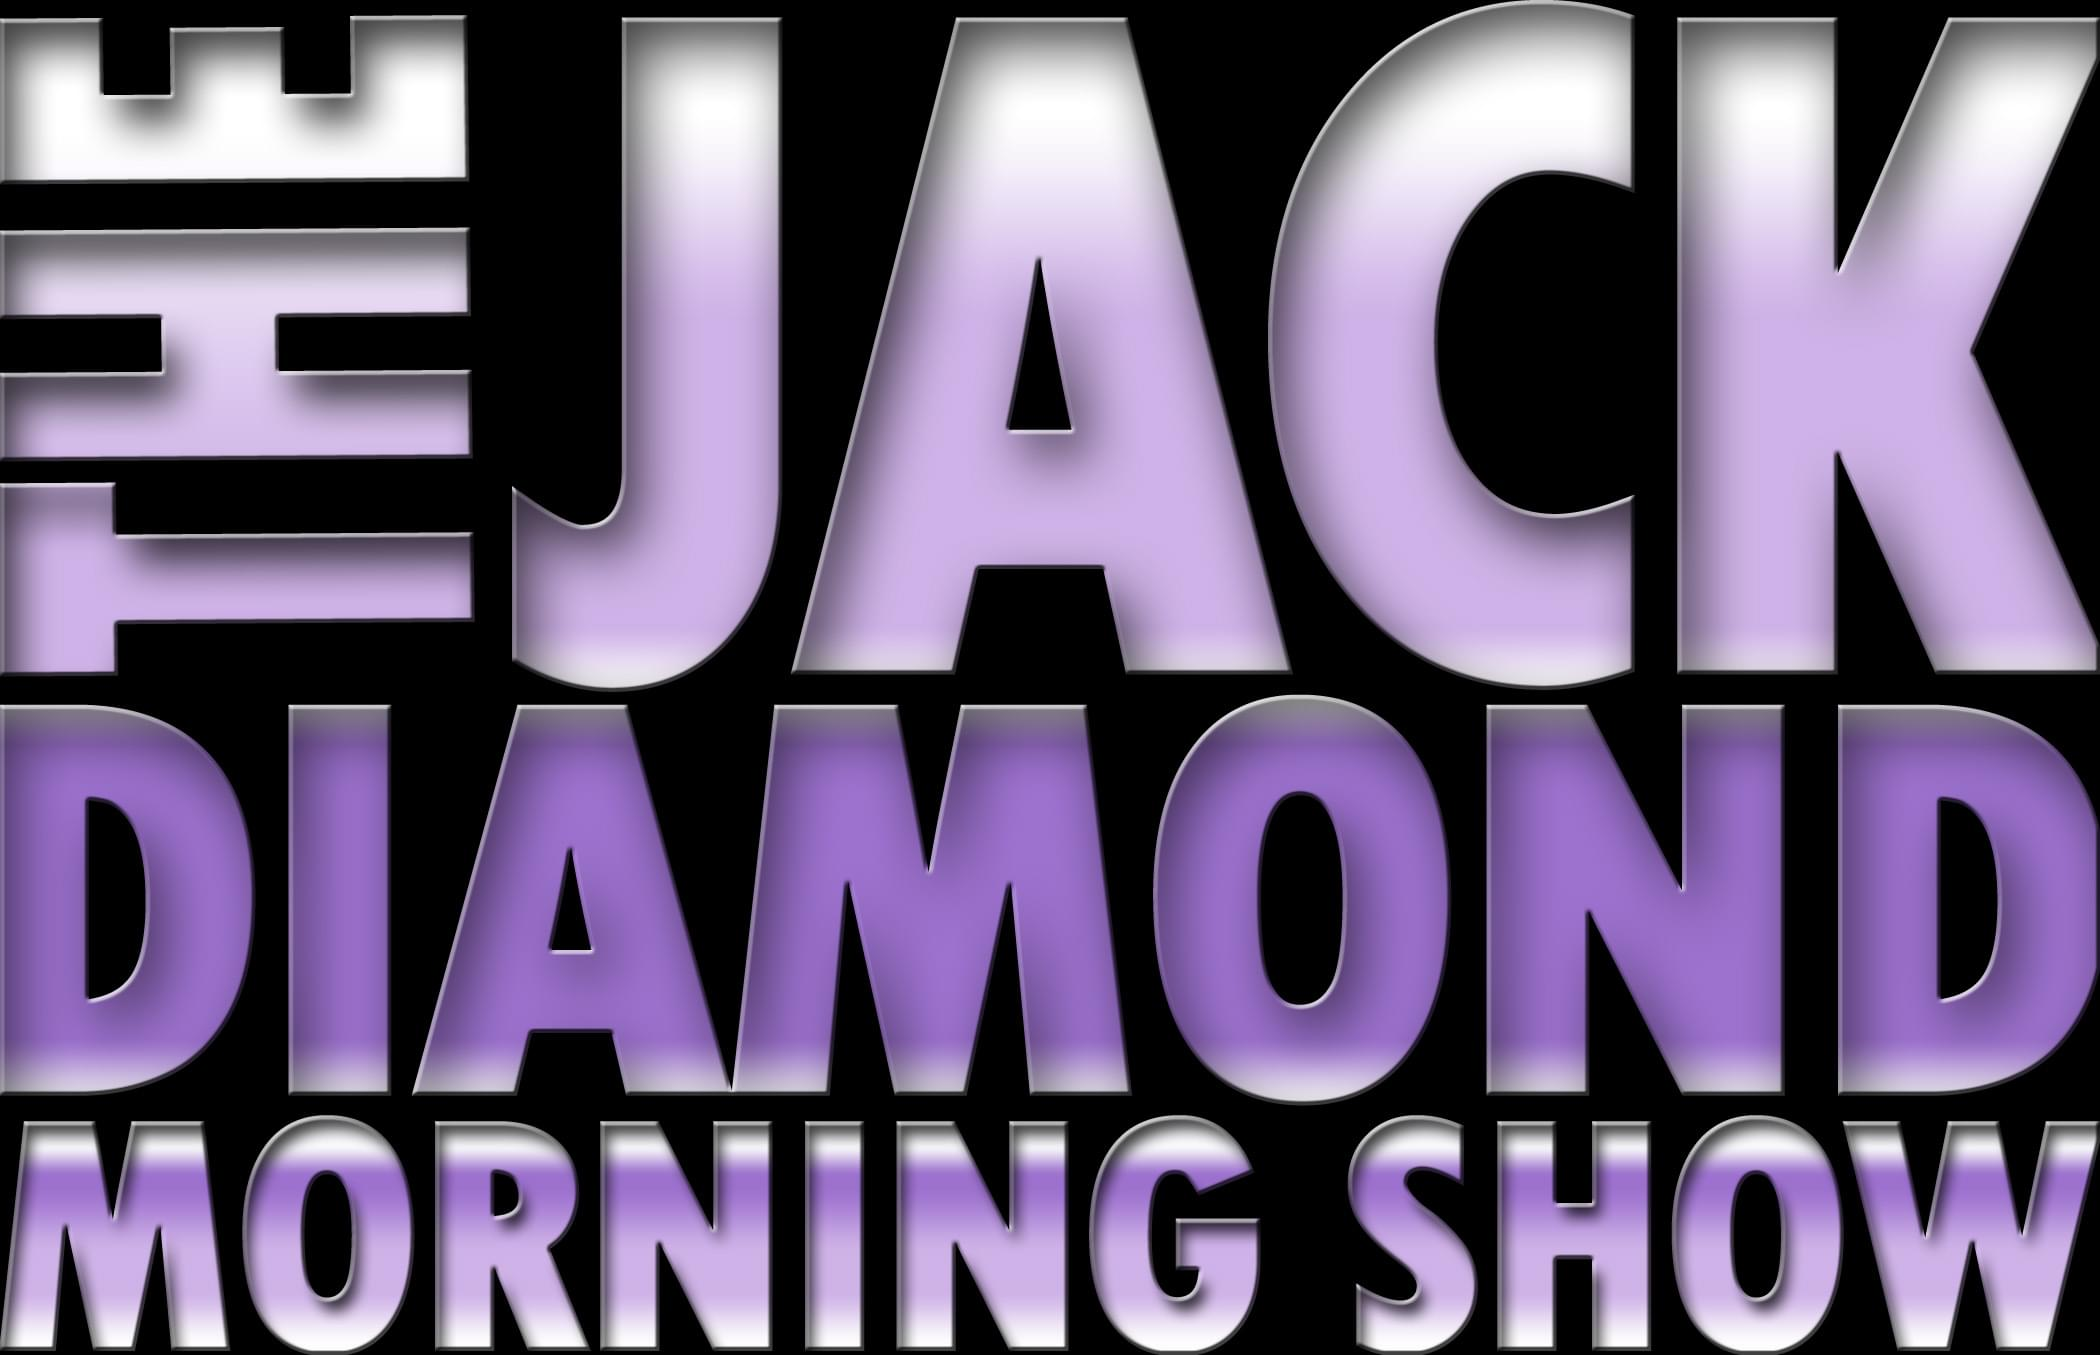 Listen to The Jack Diamond Morning Show (02-04-2019) The Show, the whole show, and nothing but the show!